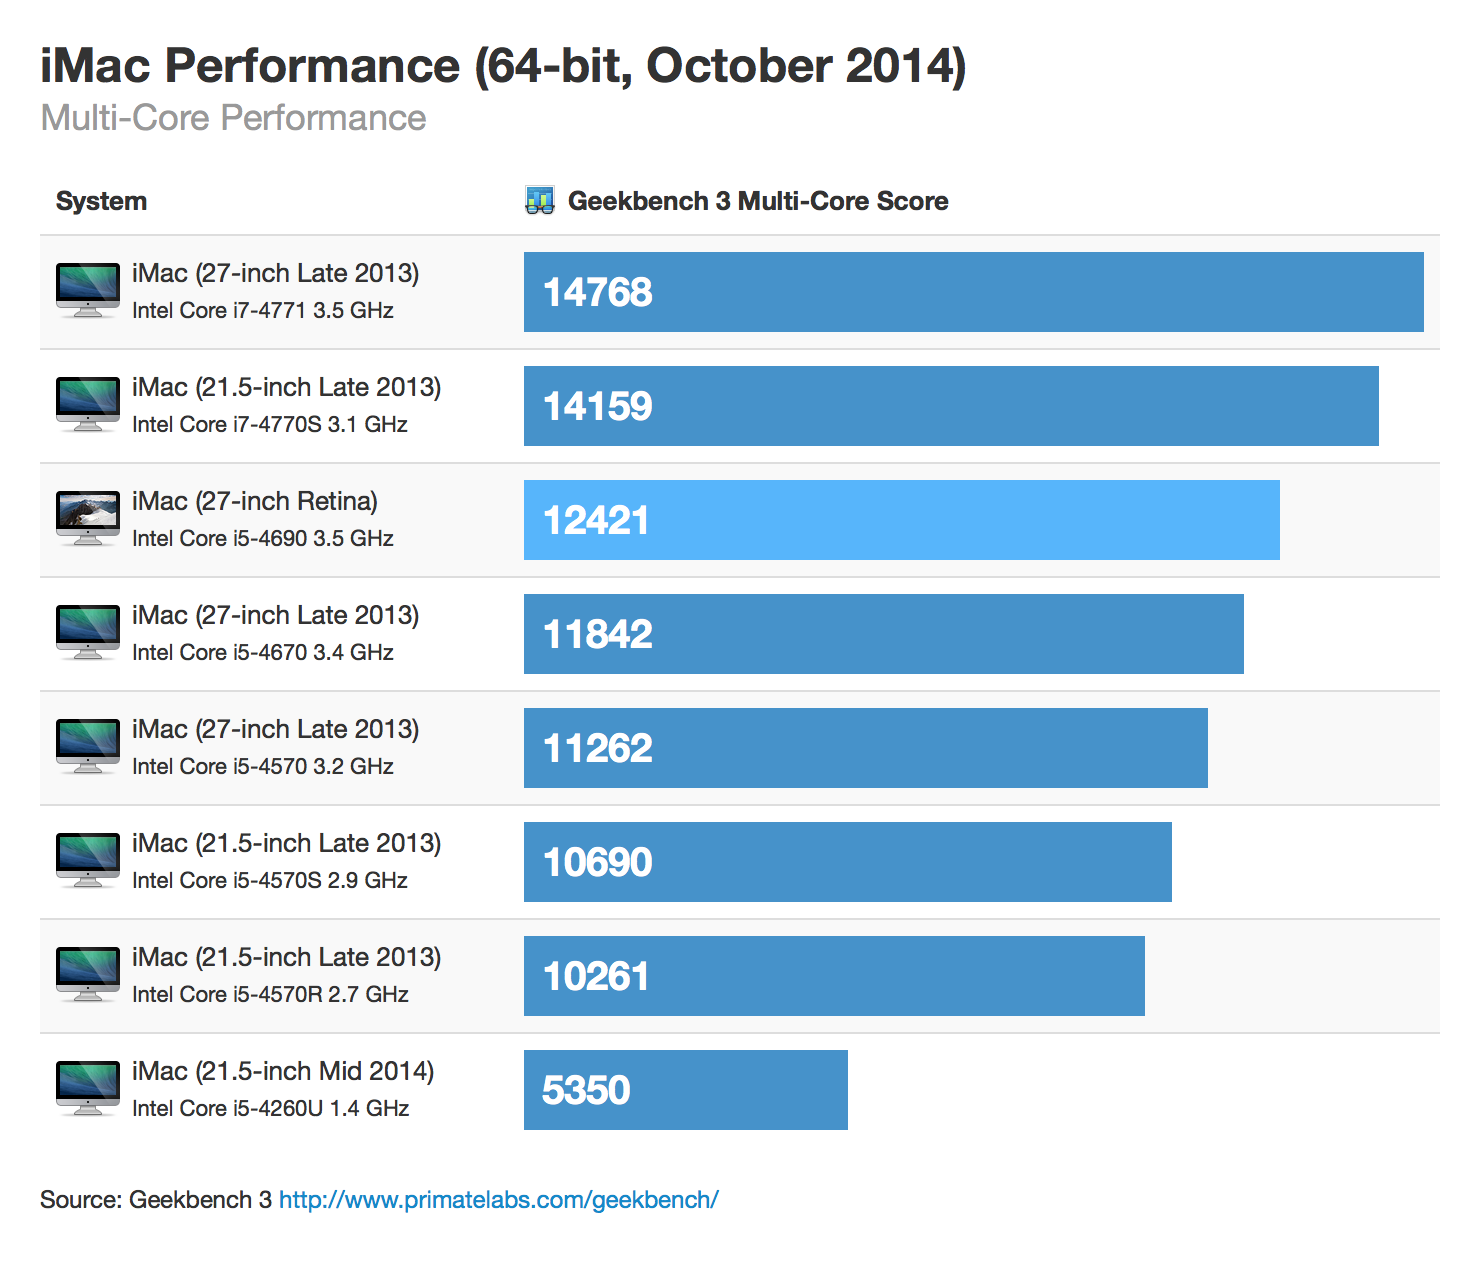 retina-imac-64bit-october-2014-multicore